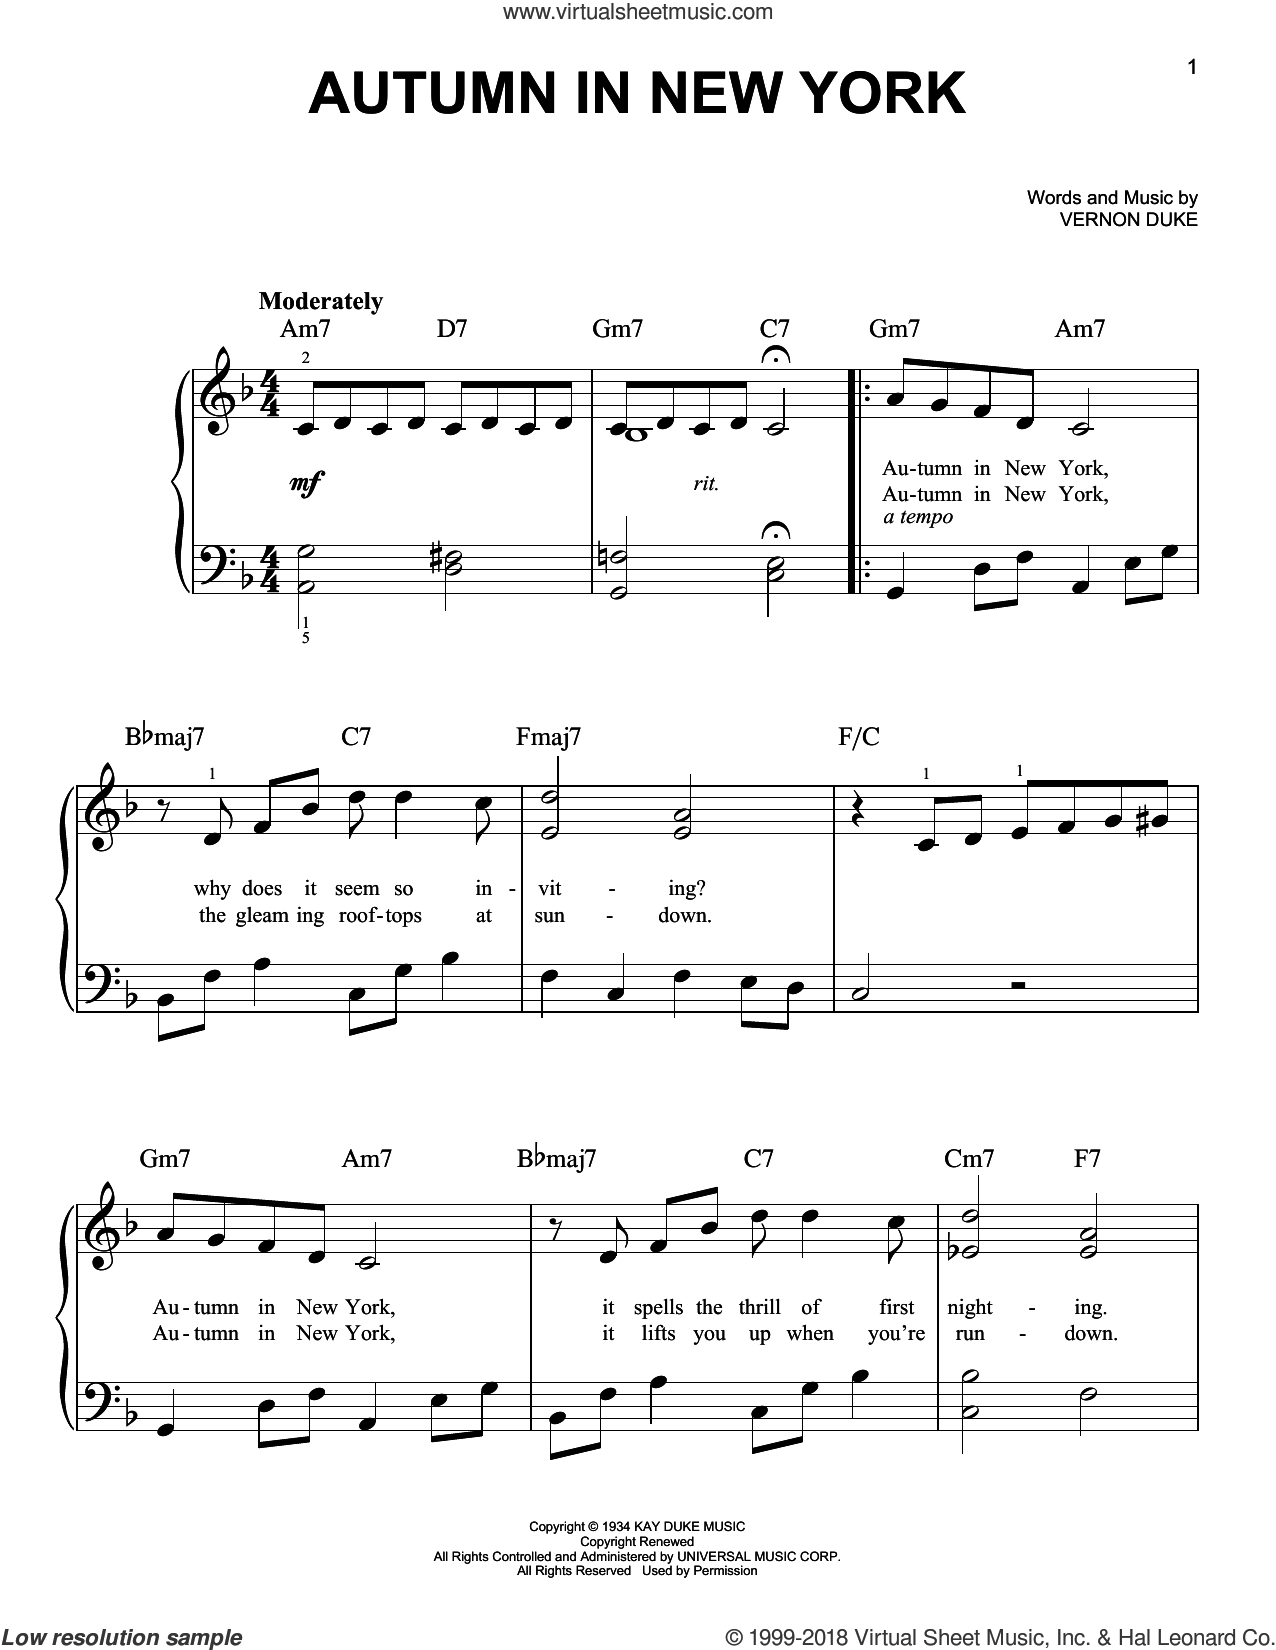 Autumn In New York sheet music for piano solo by Vernon Duke, Bud Powell and Jo Stafford, beginner skill level